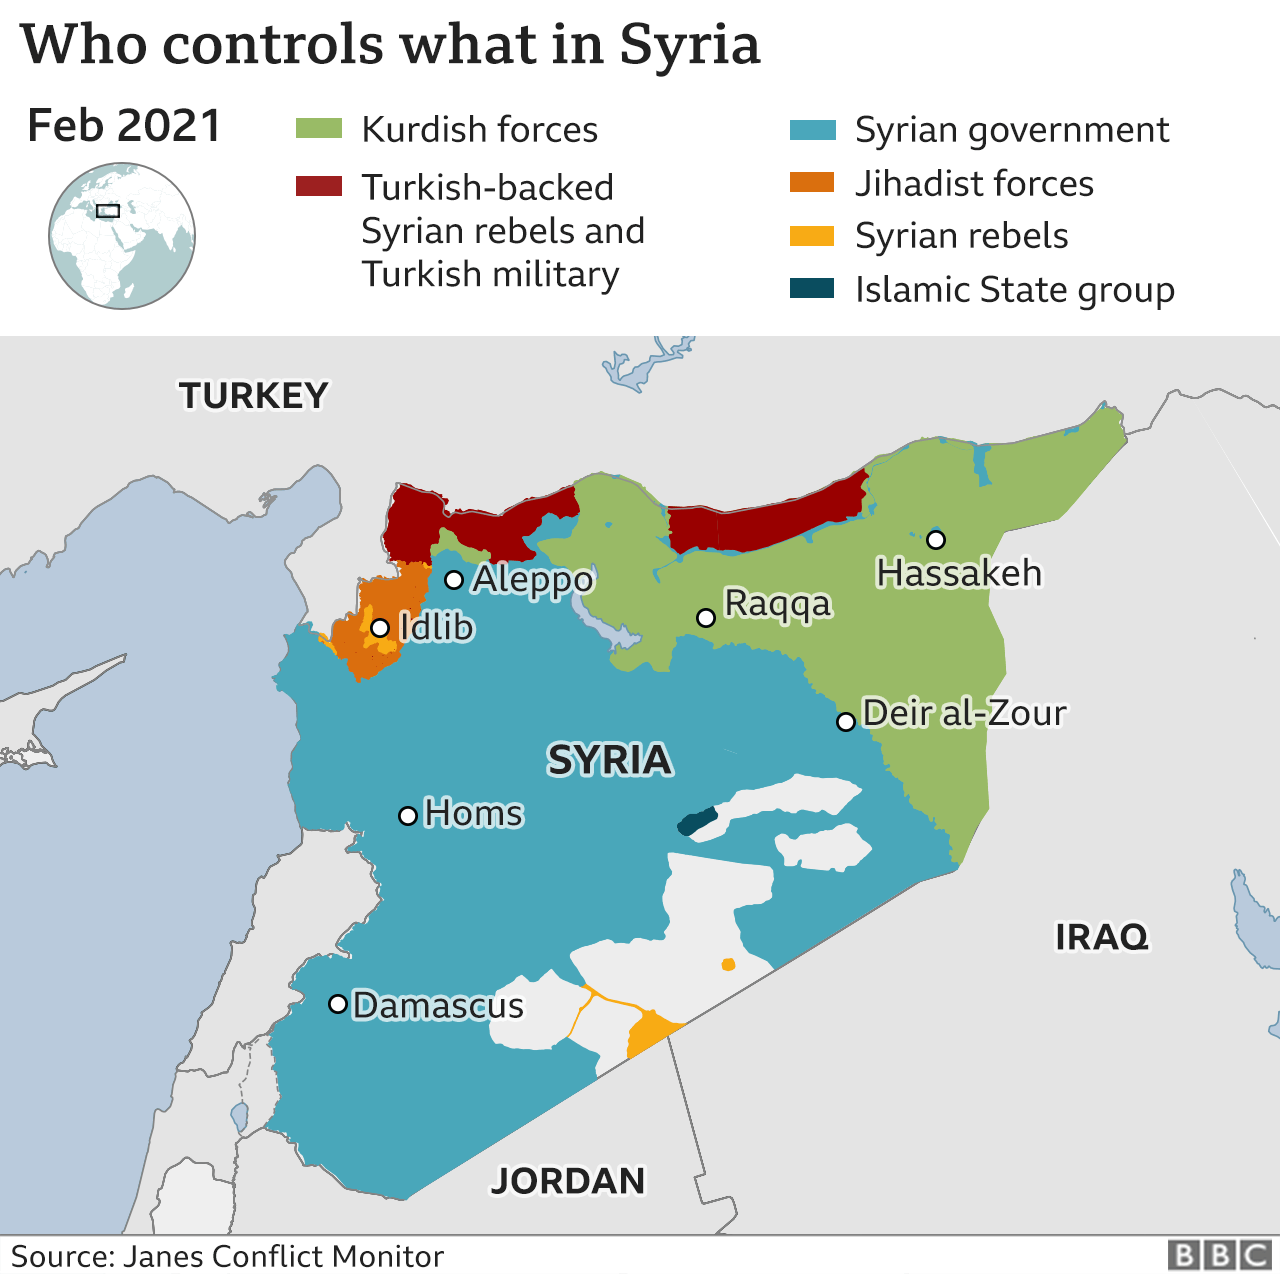 Map showing control of Syria (February 2021)